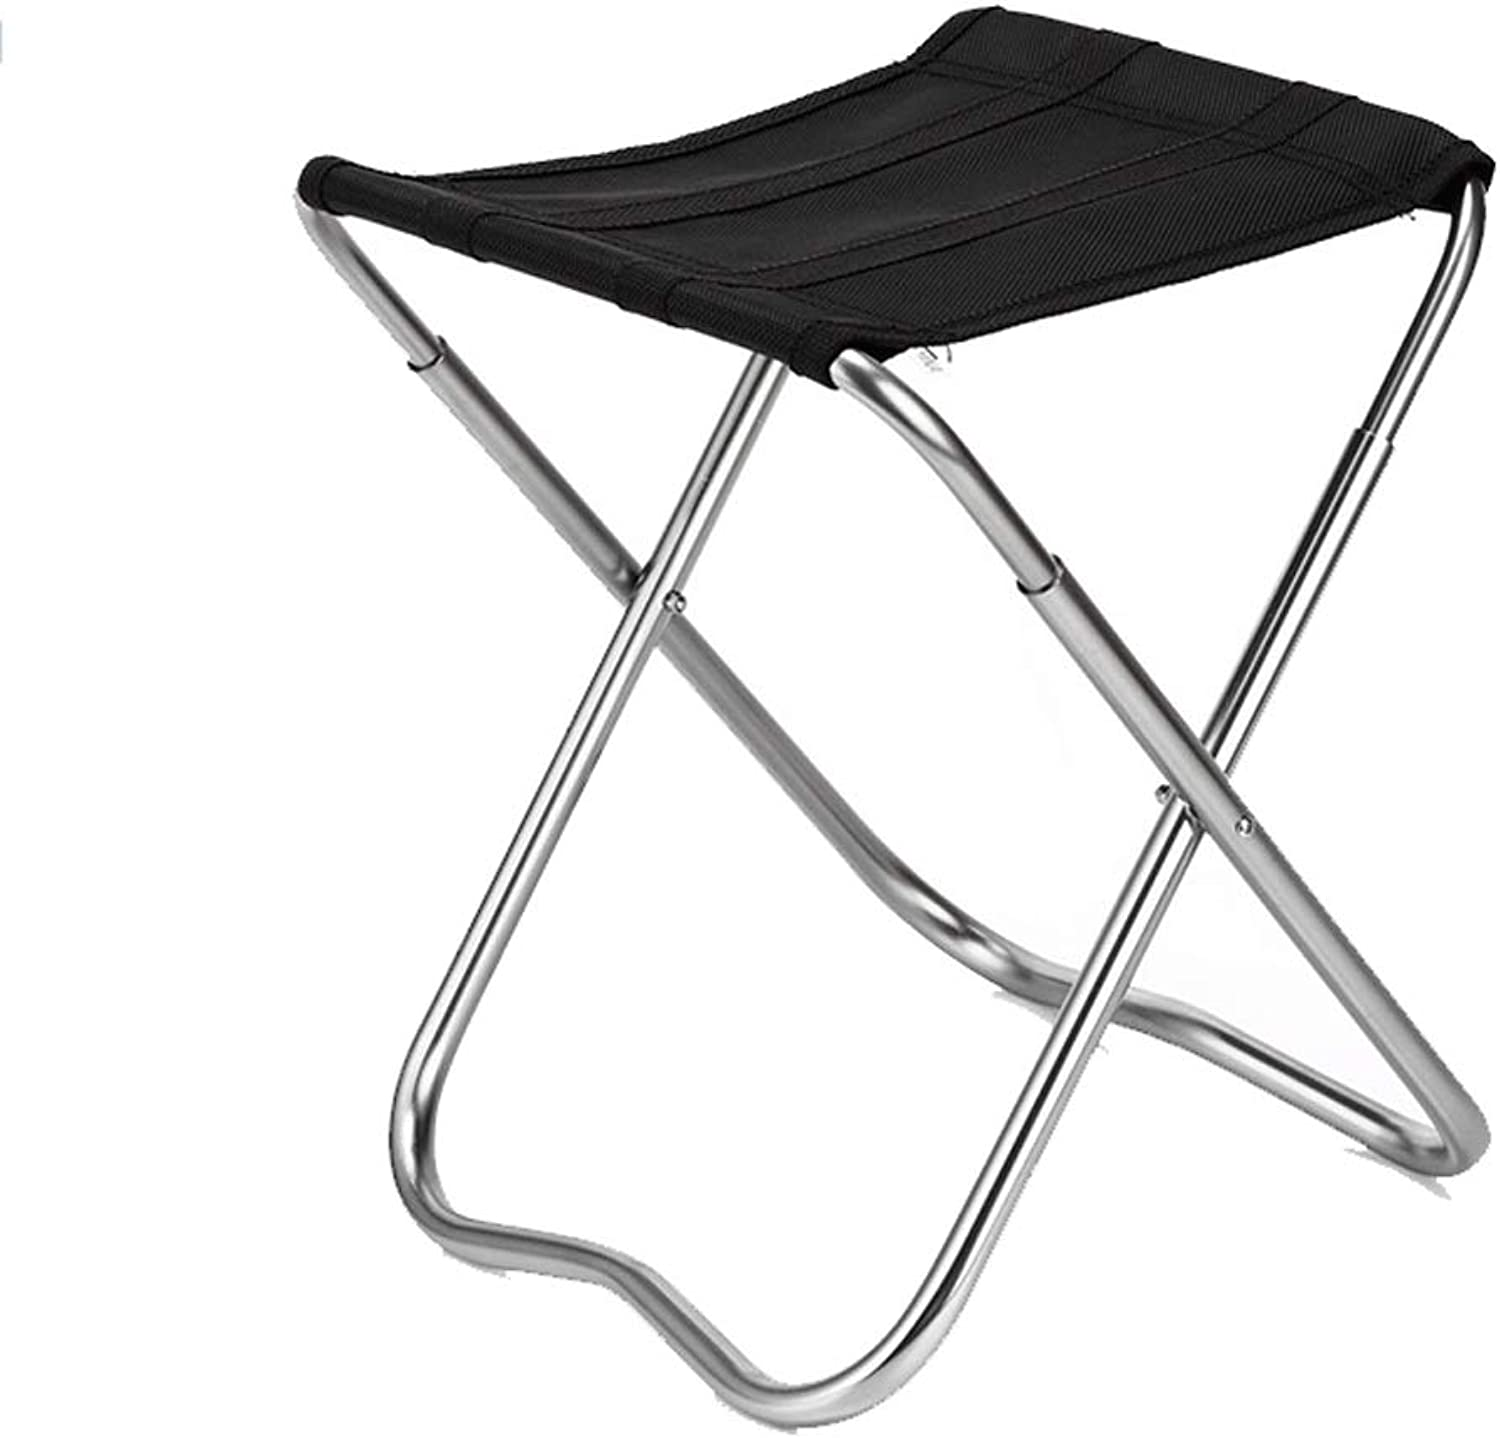 Fishing Fishing Chair Leisure Portable Thickening Solid Folding Mazar Chair Stool Fishing Stool Small Maza Black